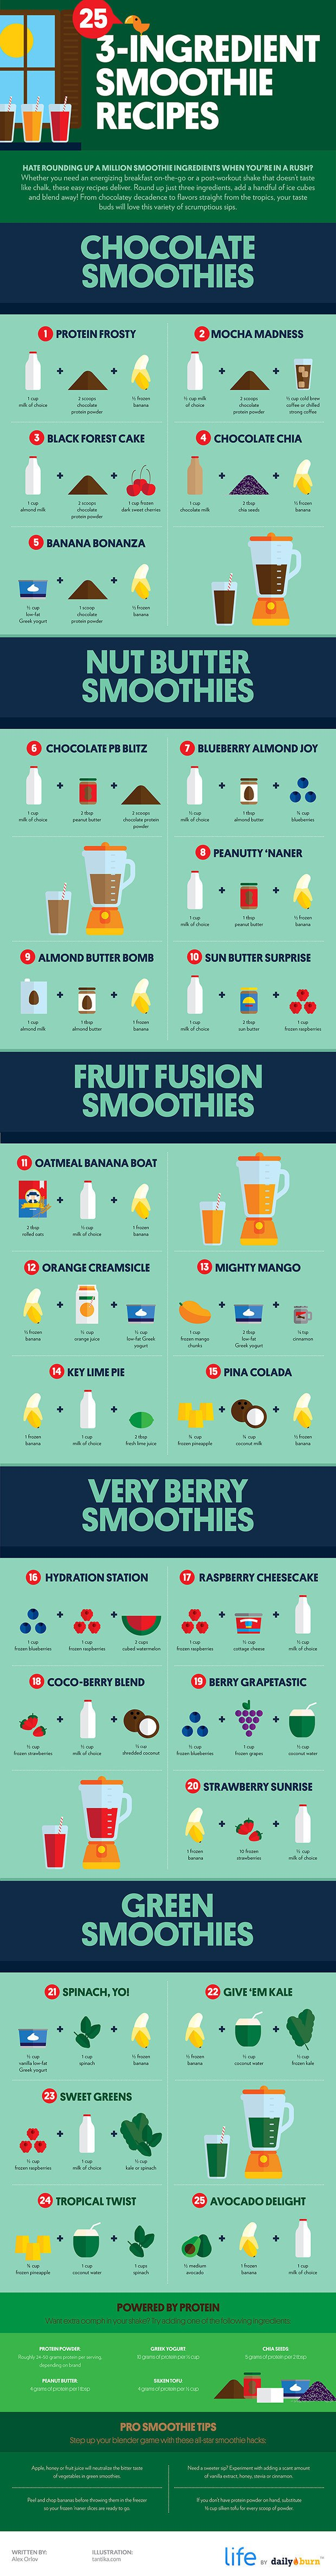 3-ingredient-smoothies